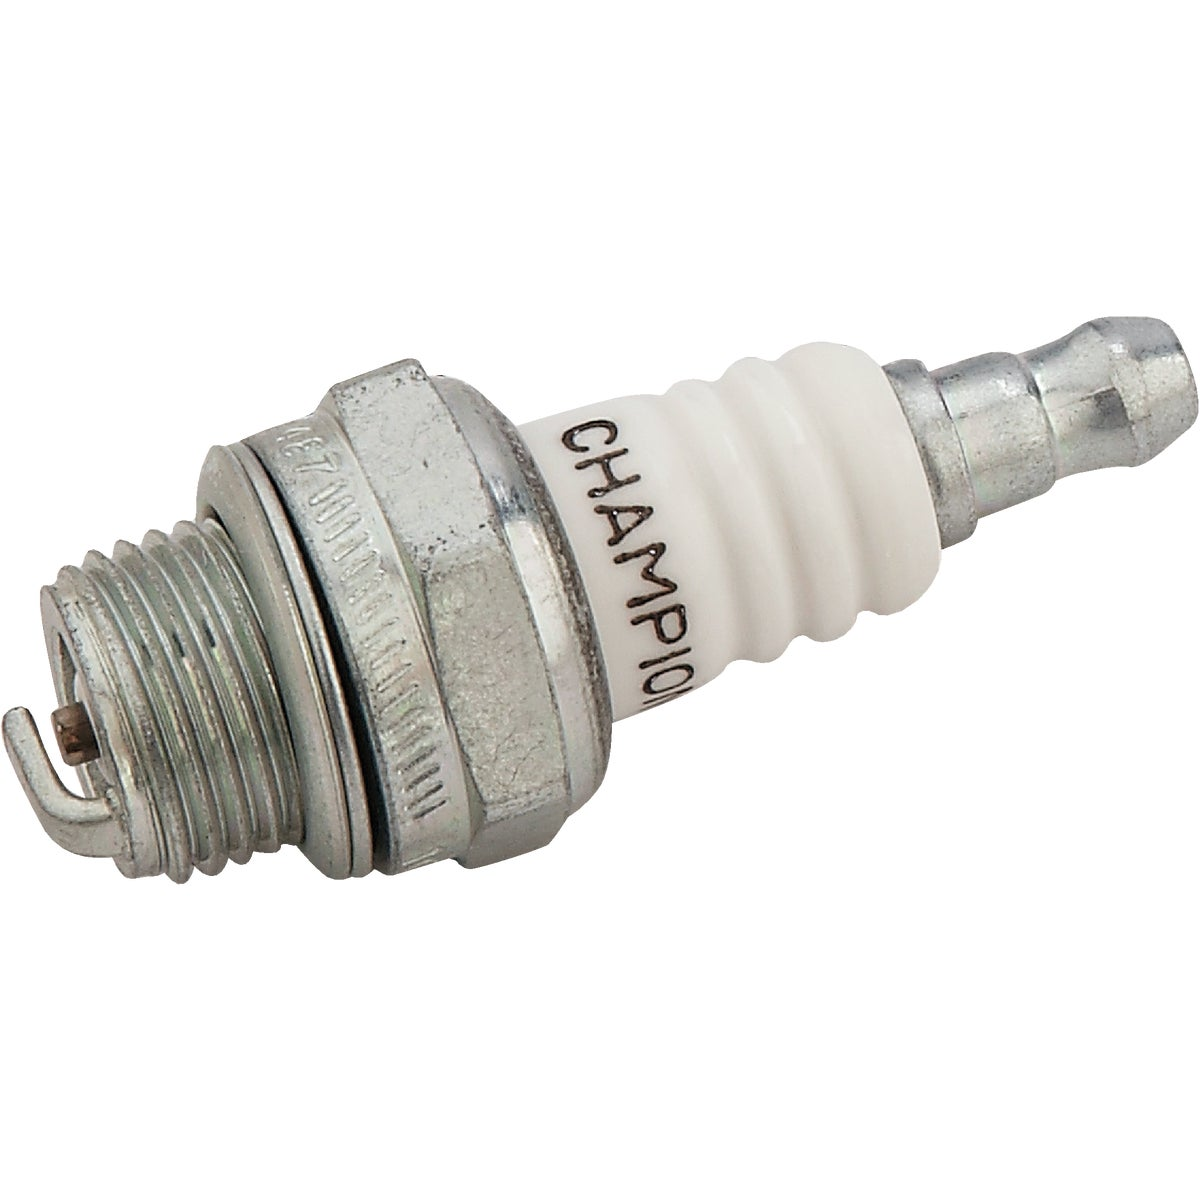 CJ6 CHAINSAW PLUG - 849C by Federal Mogul